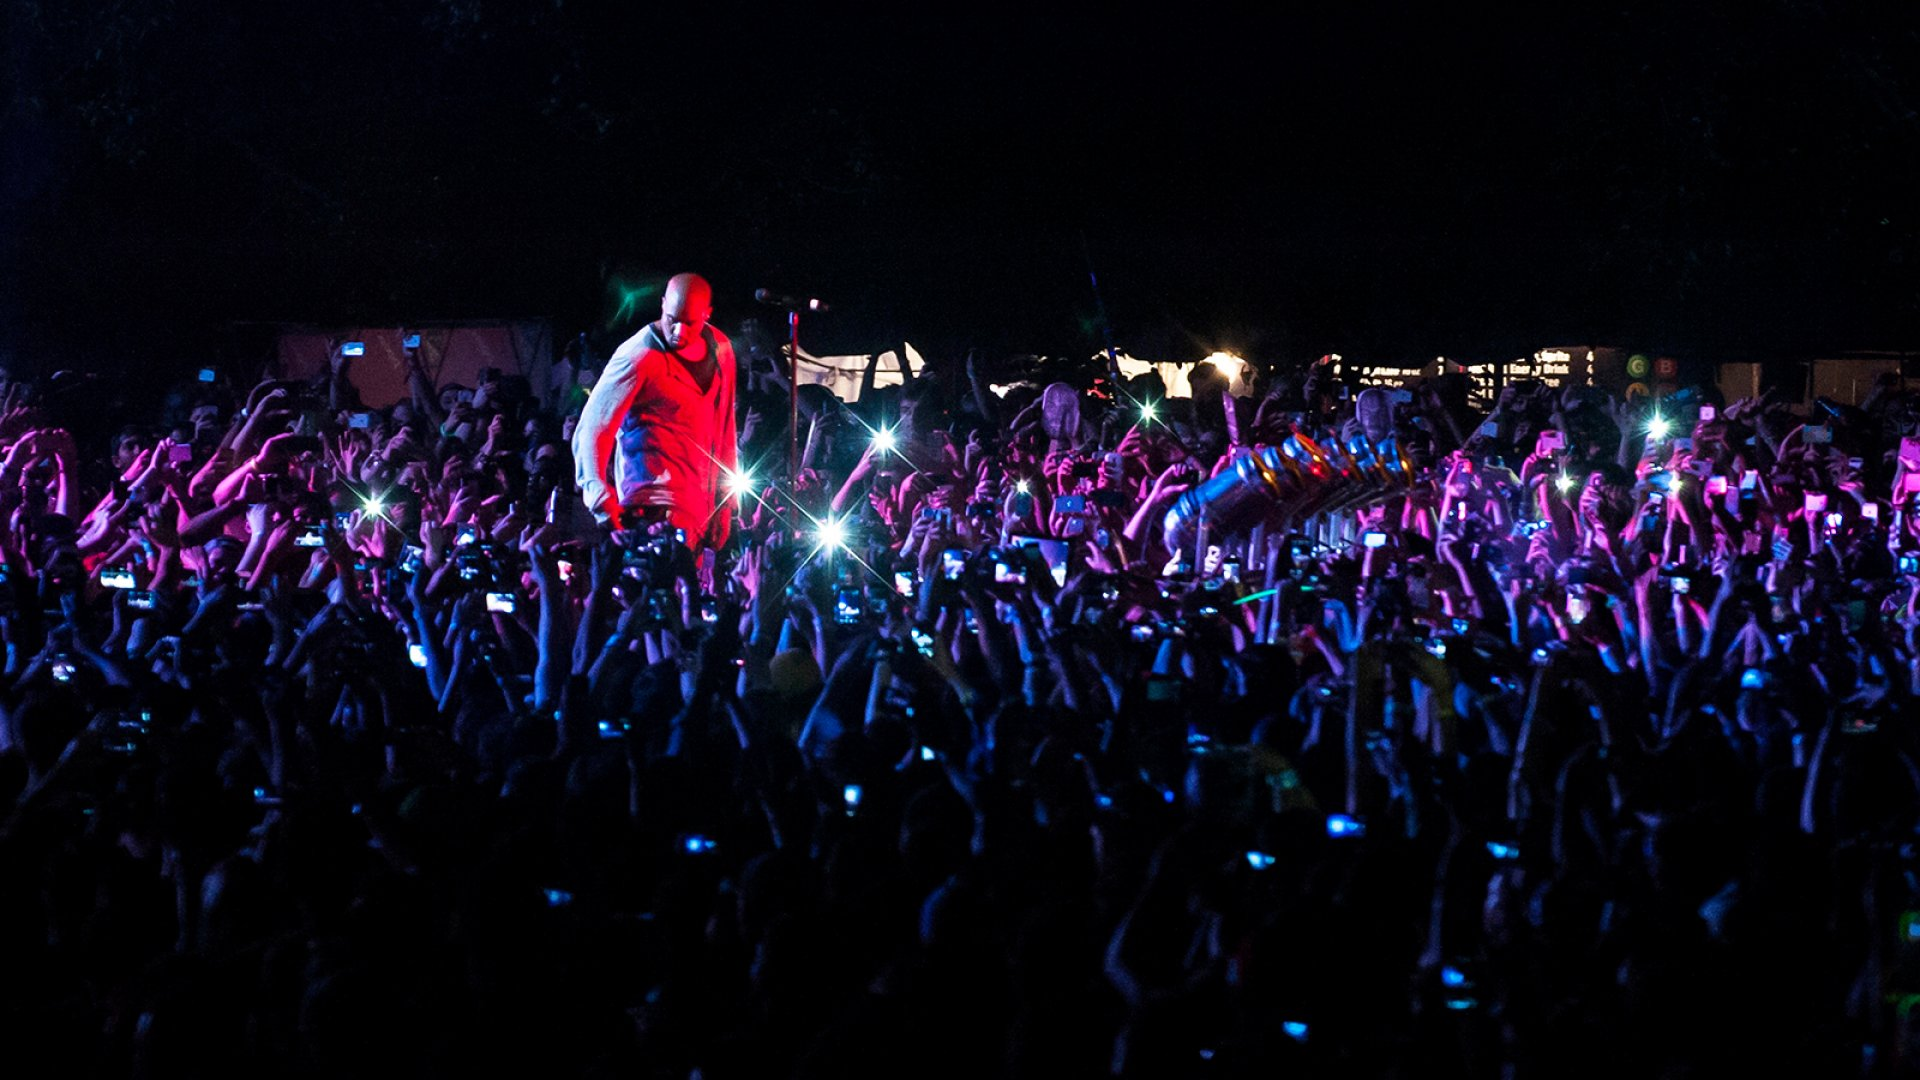 Although it was nearly washed out in 2013, the Governors Ball Music Festival now draws 50,000 people per day–150,000 for the weekend–with acts such as Kanye West (above), the Strokes, the Black Keys, Guns n' Roses, Outkast, Drake, Kings of Leon, and the Killers.